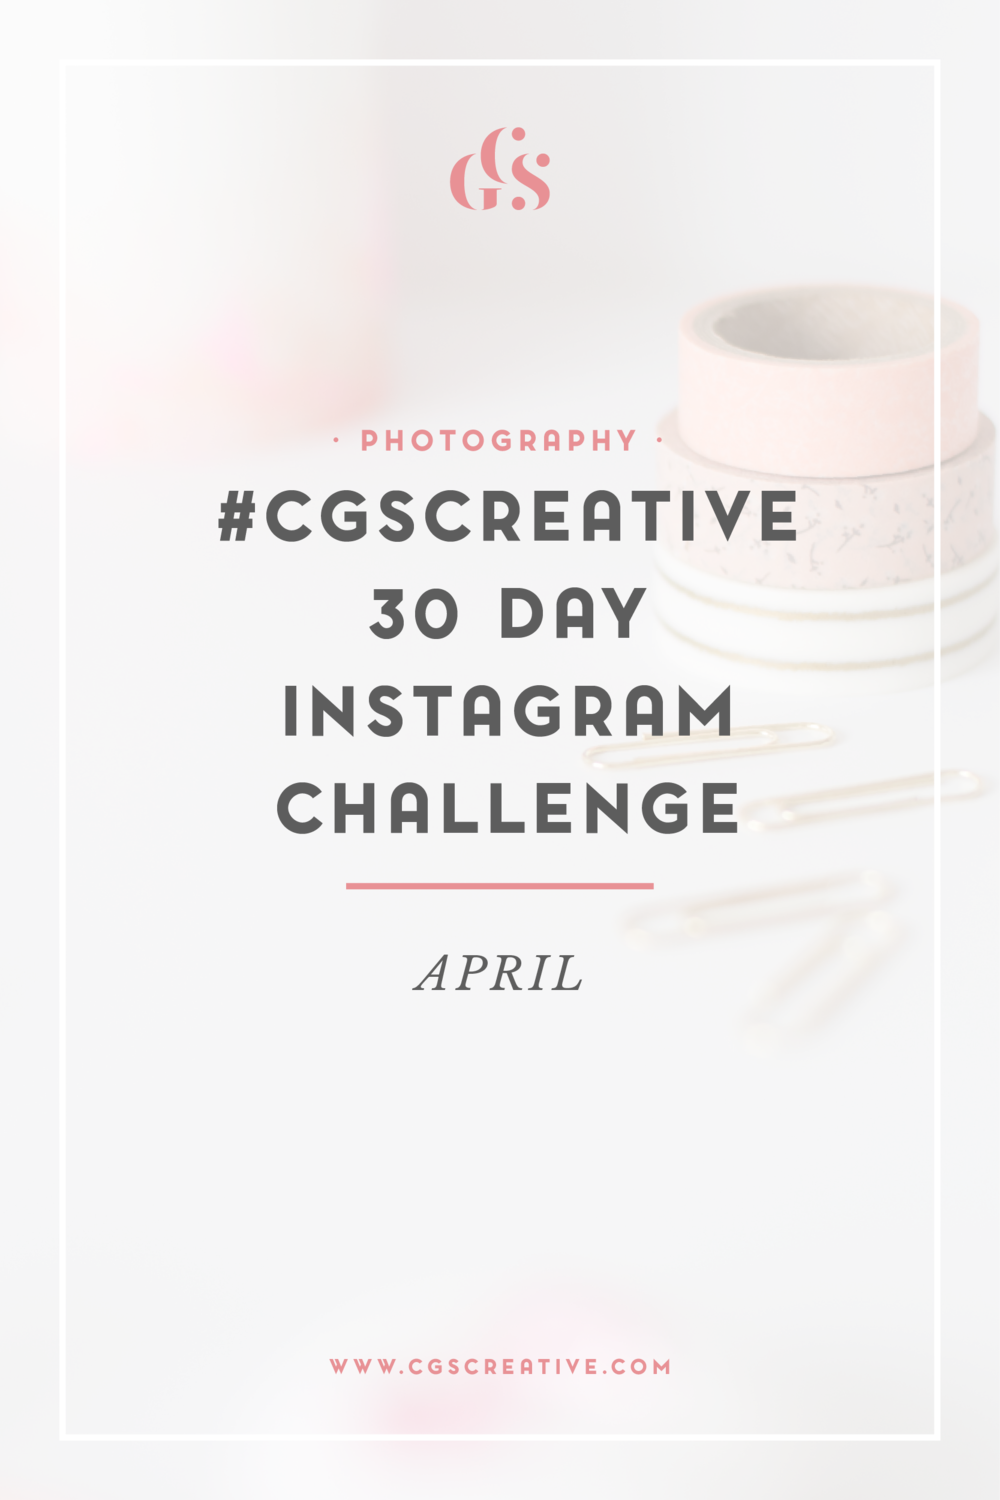 CGScreative 30 day Photo Challenge Instagram Photo Challenge